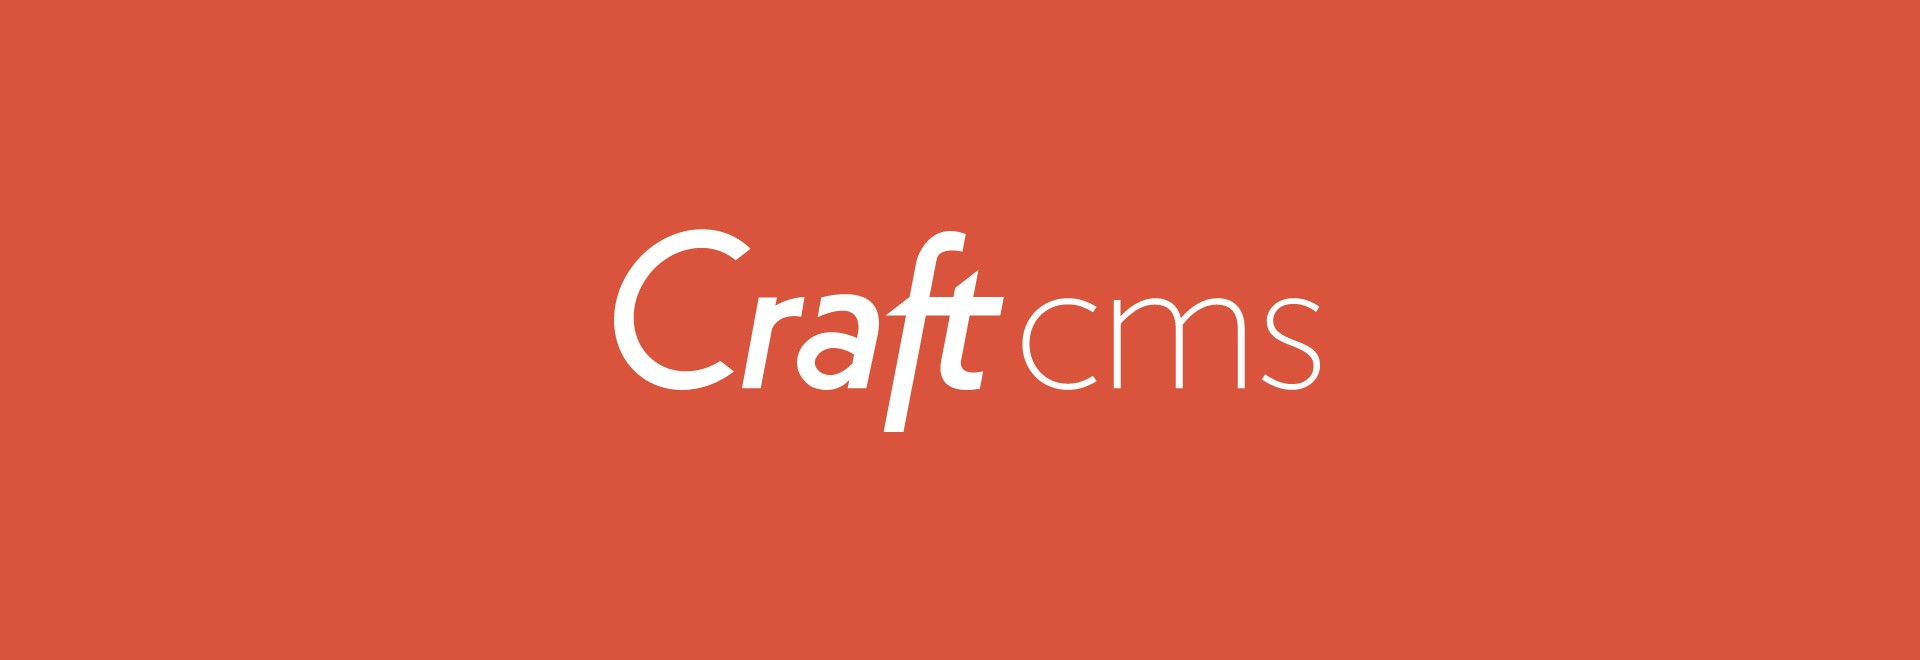 Craftcms Hero Image